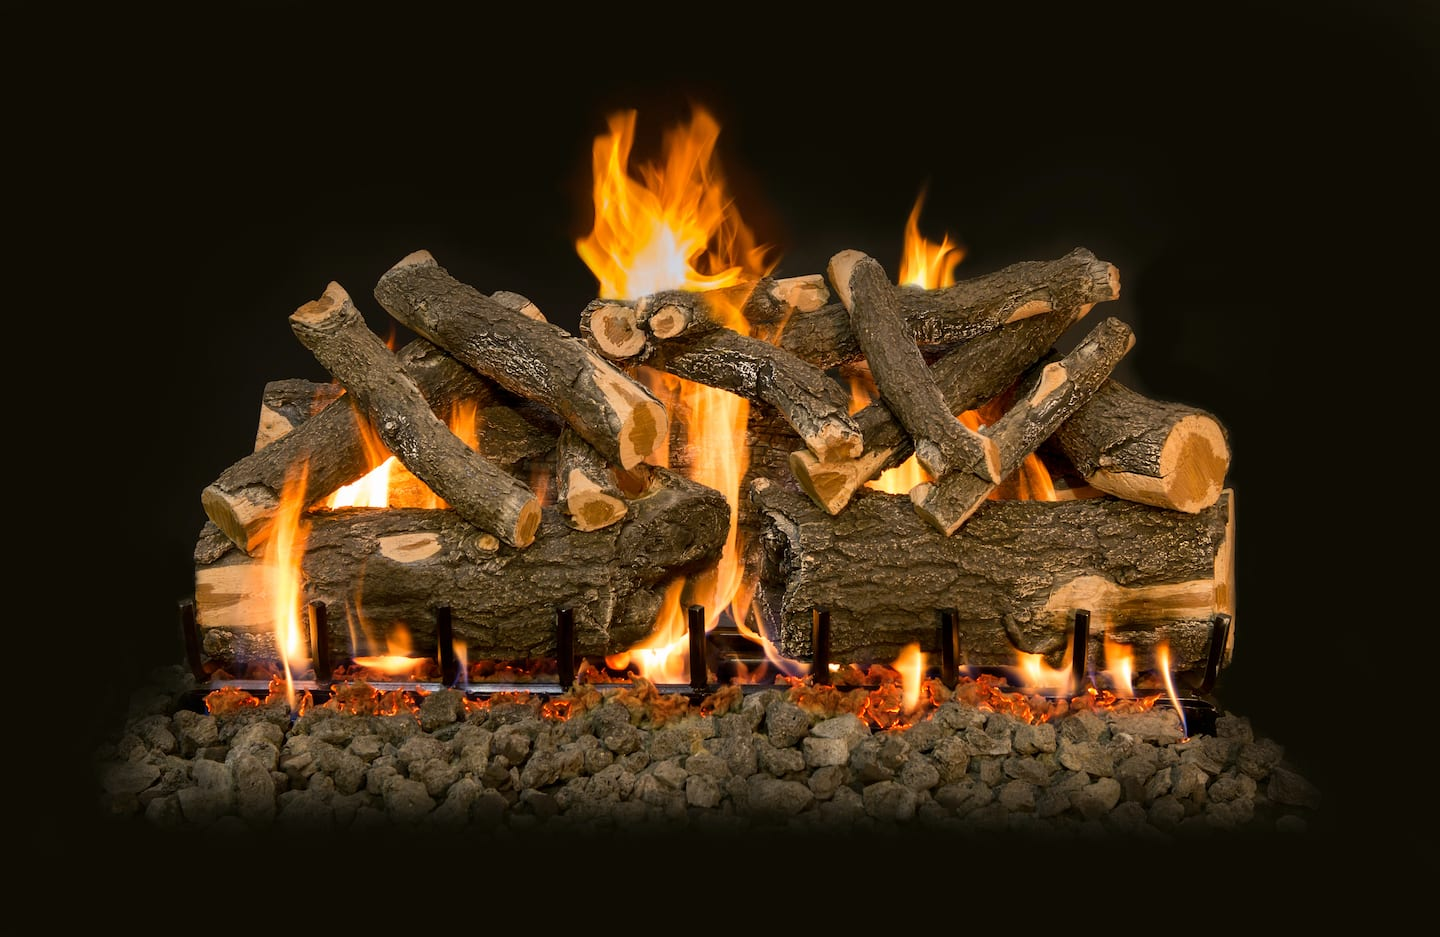 Join for FREE to read real reviews and see ratings for Jacksonville Gas Fireplace Repair Services near you to help pick the right pro Gas Fireplace Service.